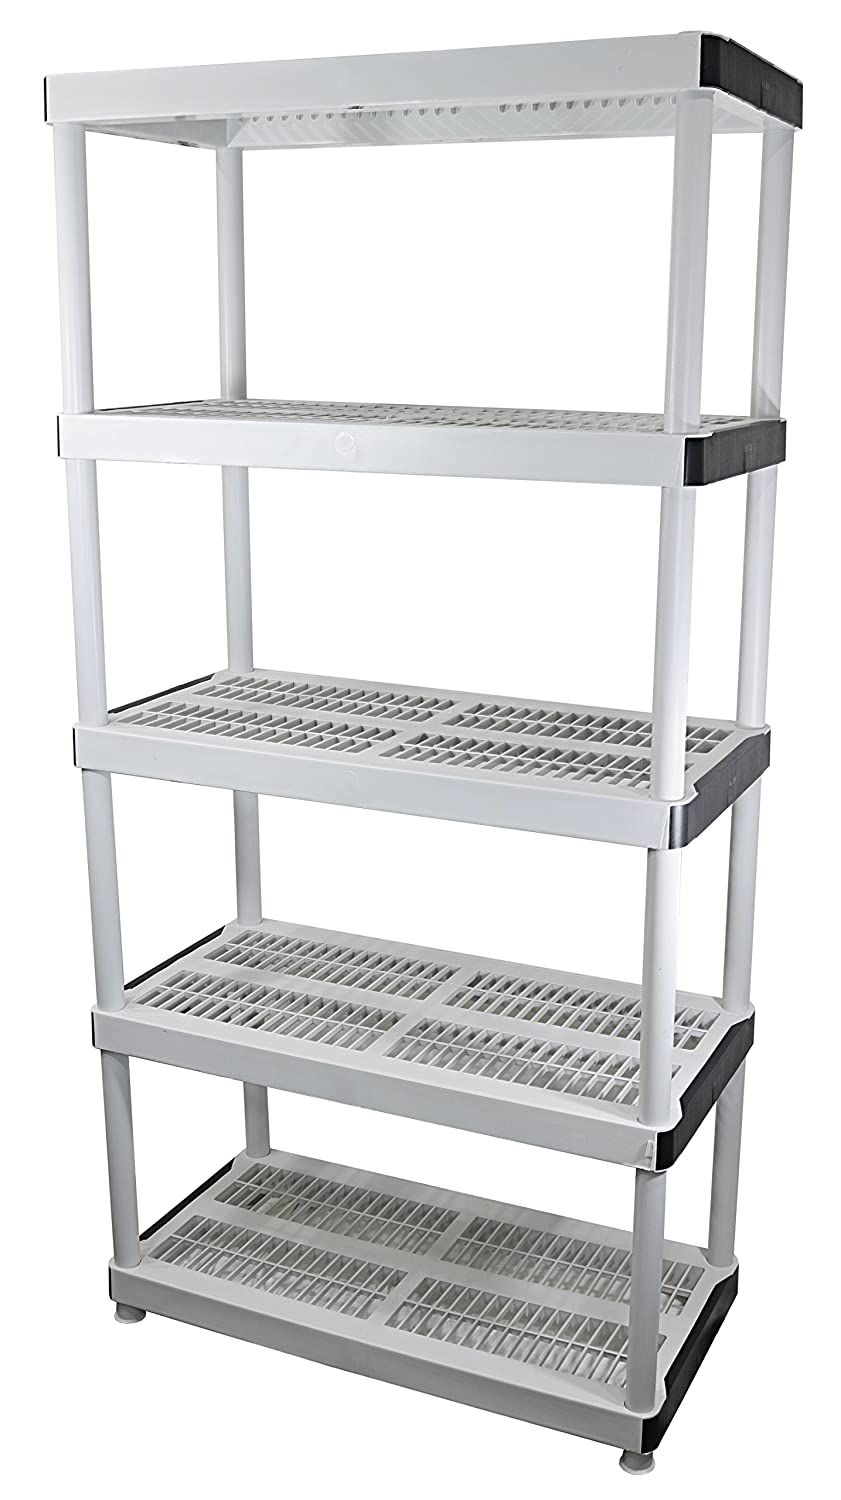 "HDX 36"" x 72"" 5-Tiered Ventilated Plastic Storage Shelving Unit w/ Raised Feet and Tool-Free Assembly 127932"